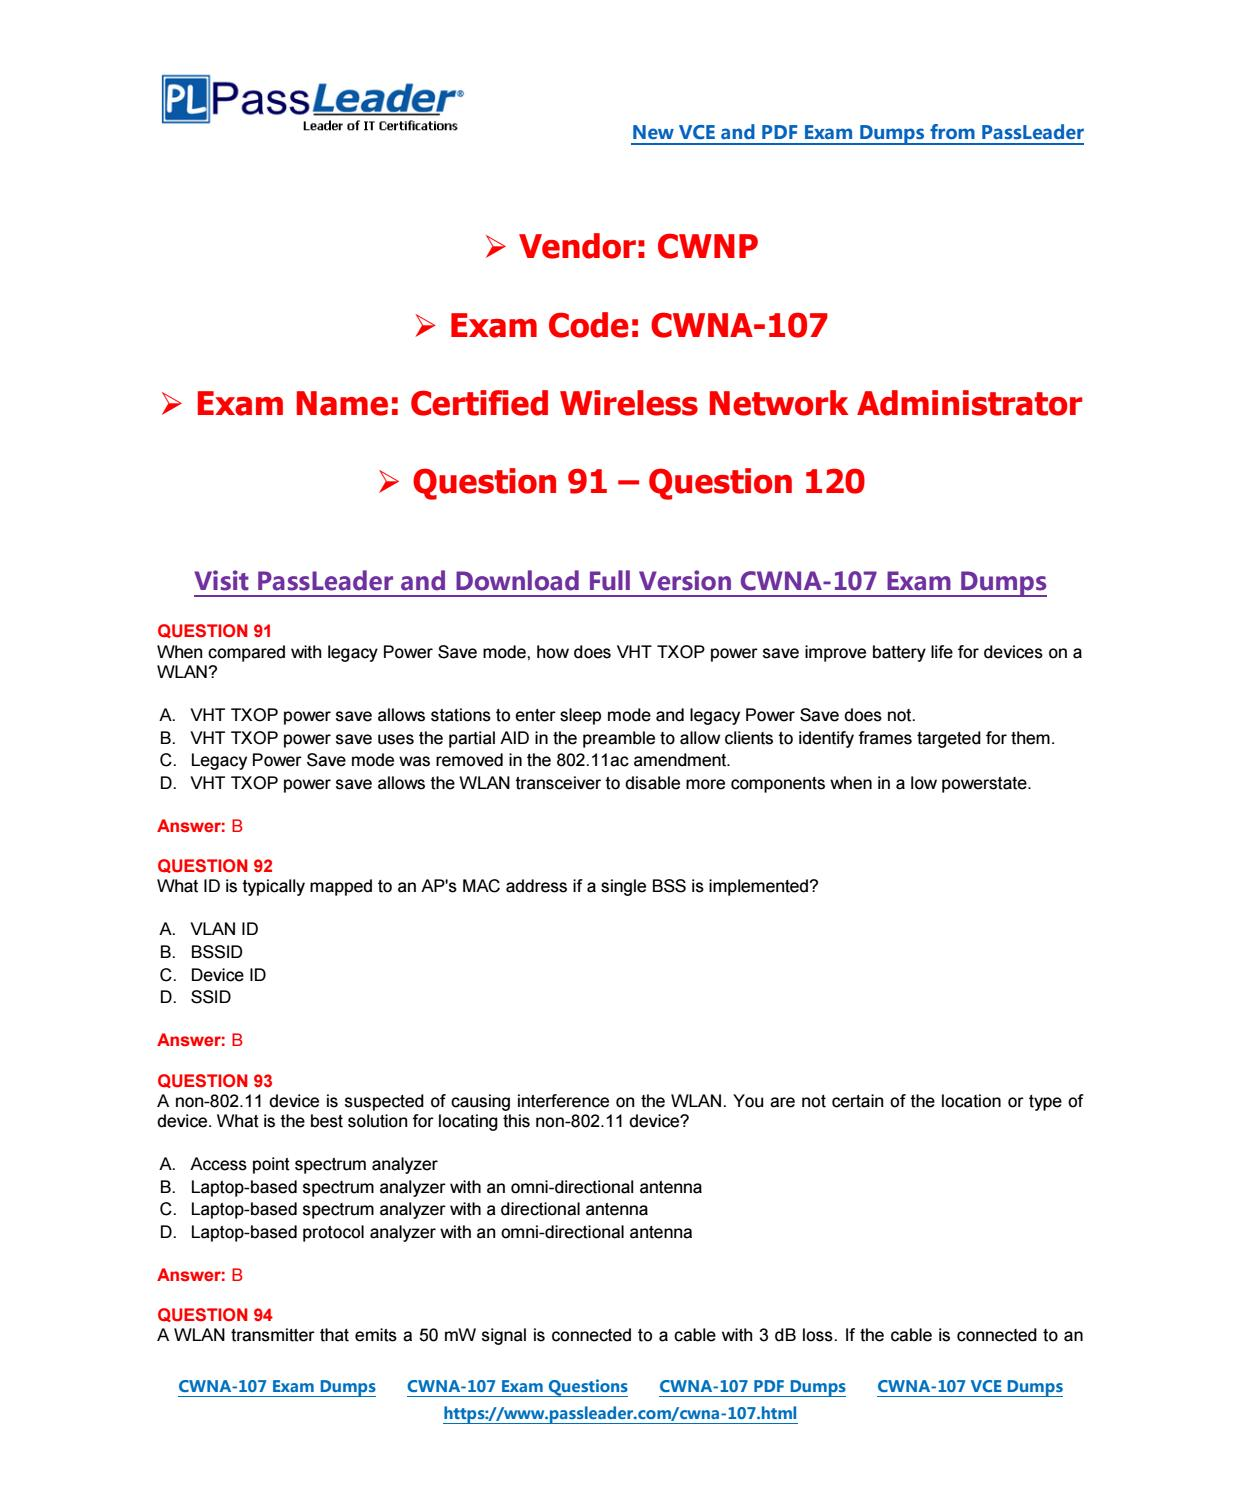 2018 New CWNP CWNA-107 Dumps with PDF and VCE (Question 91-Question ...